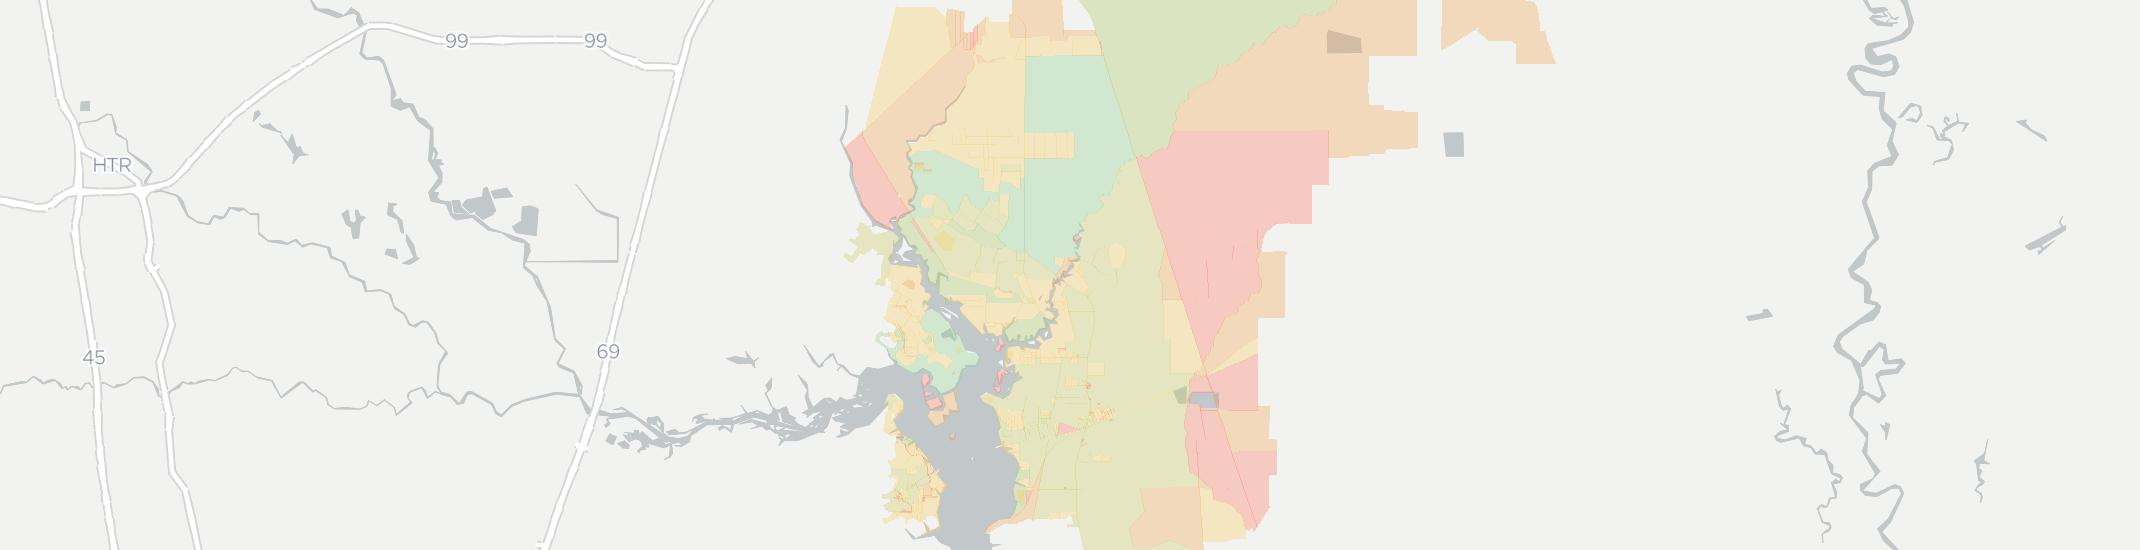 Huffman Internet Competition Map. Click for interactive map.